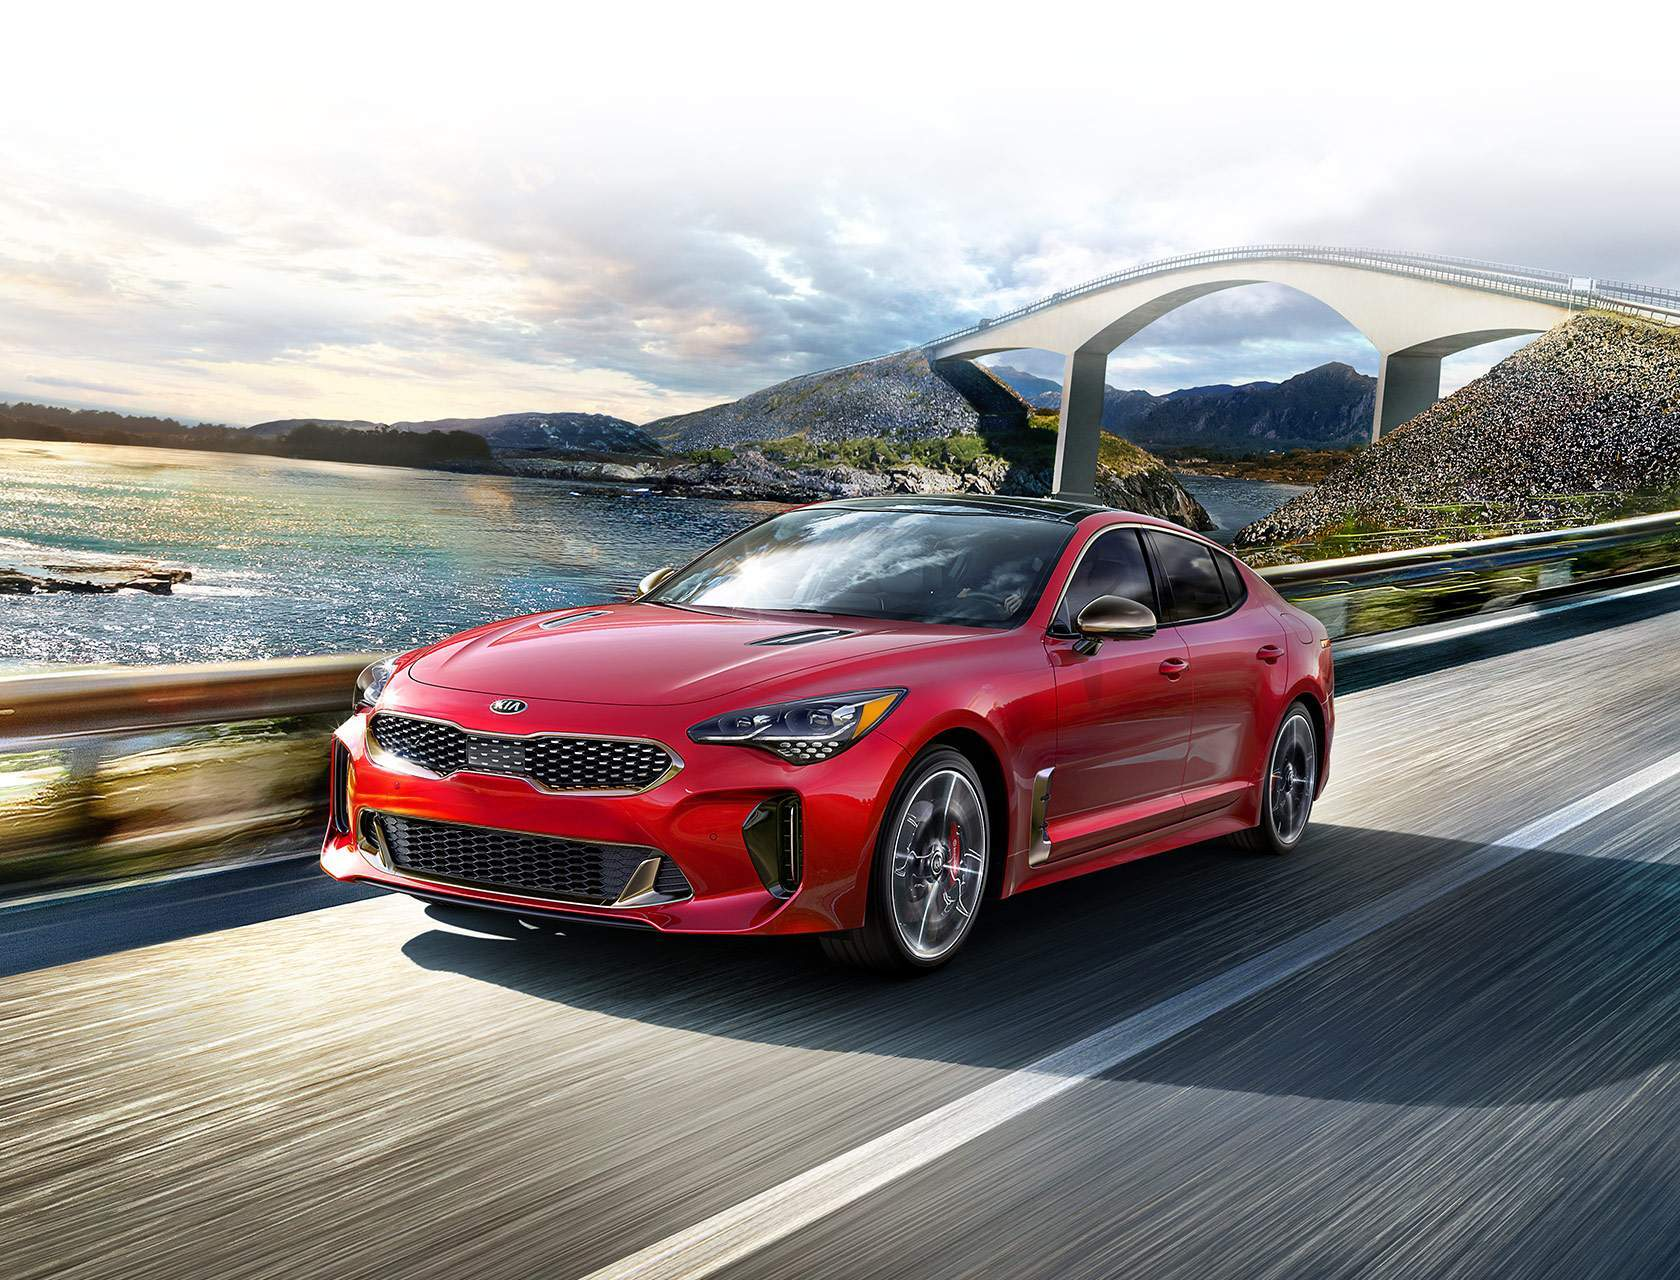 2018 Kia Stinger in Wesley Chapel, FL